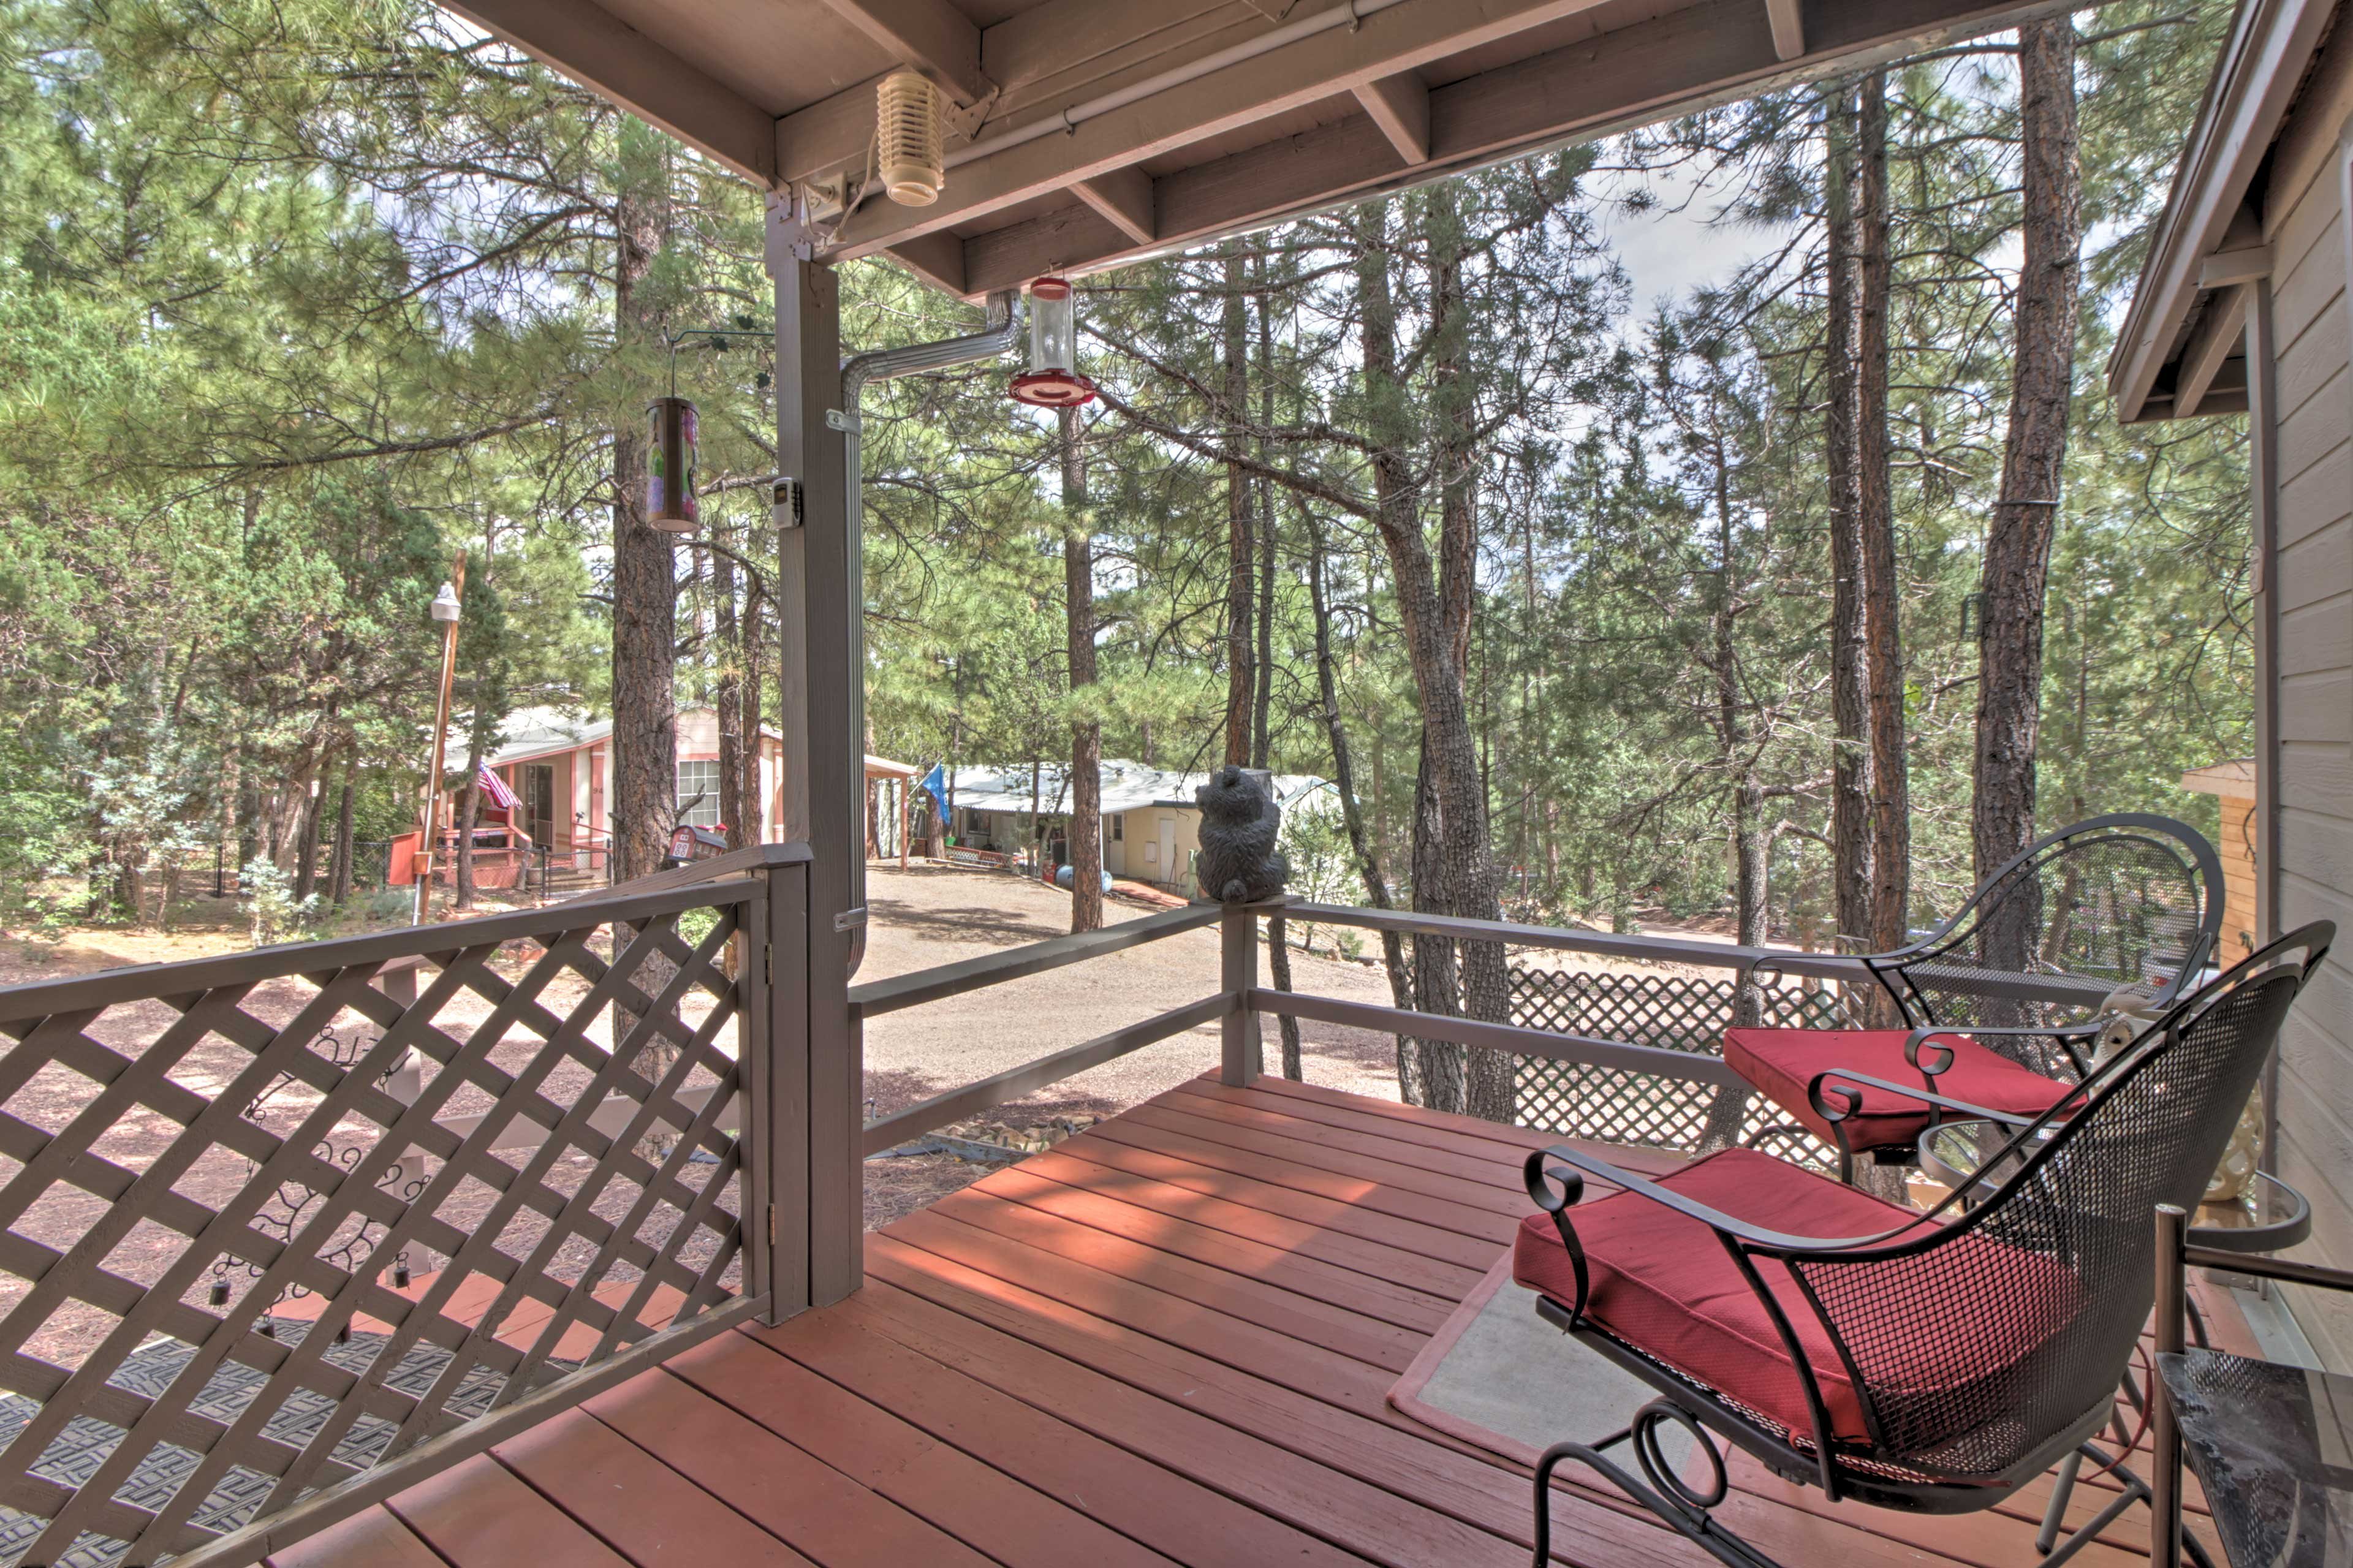 The porch will quickly become one of your favorite places to relax.